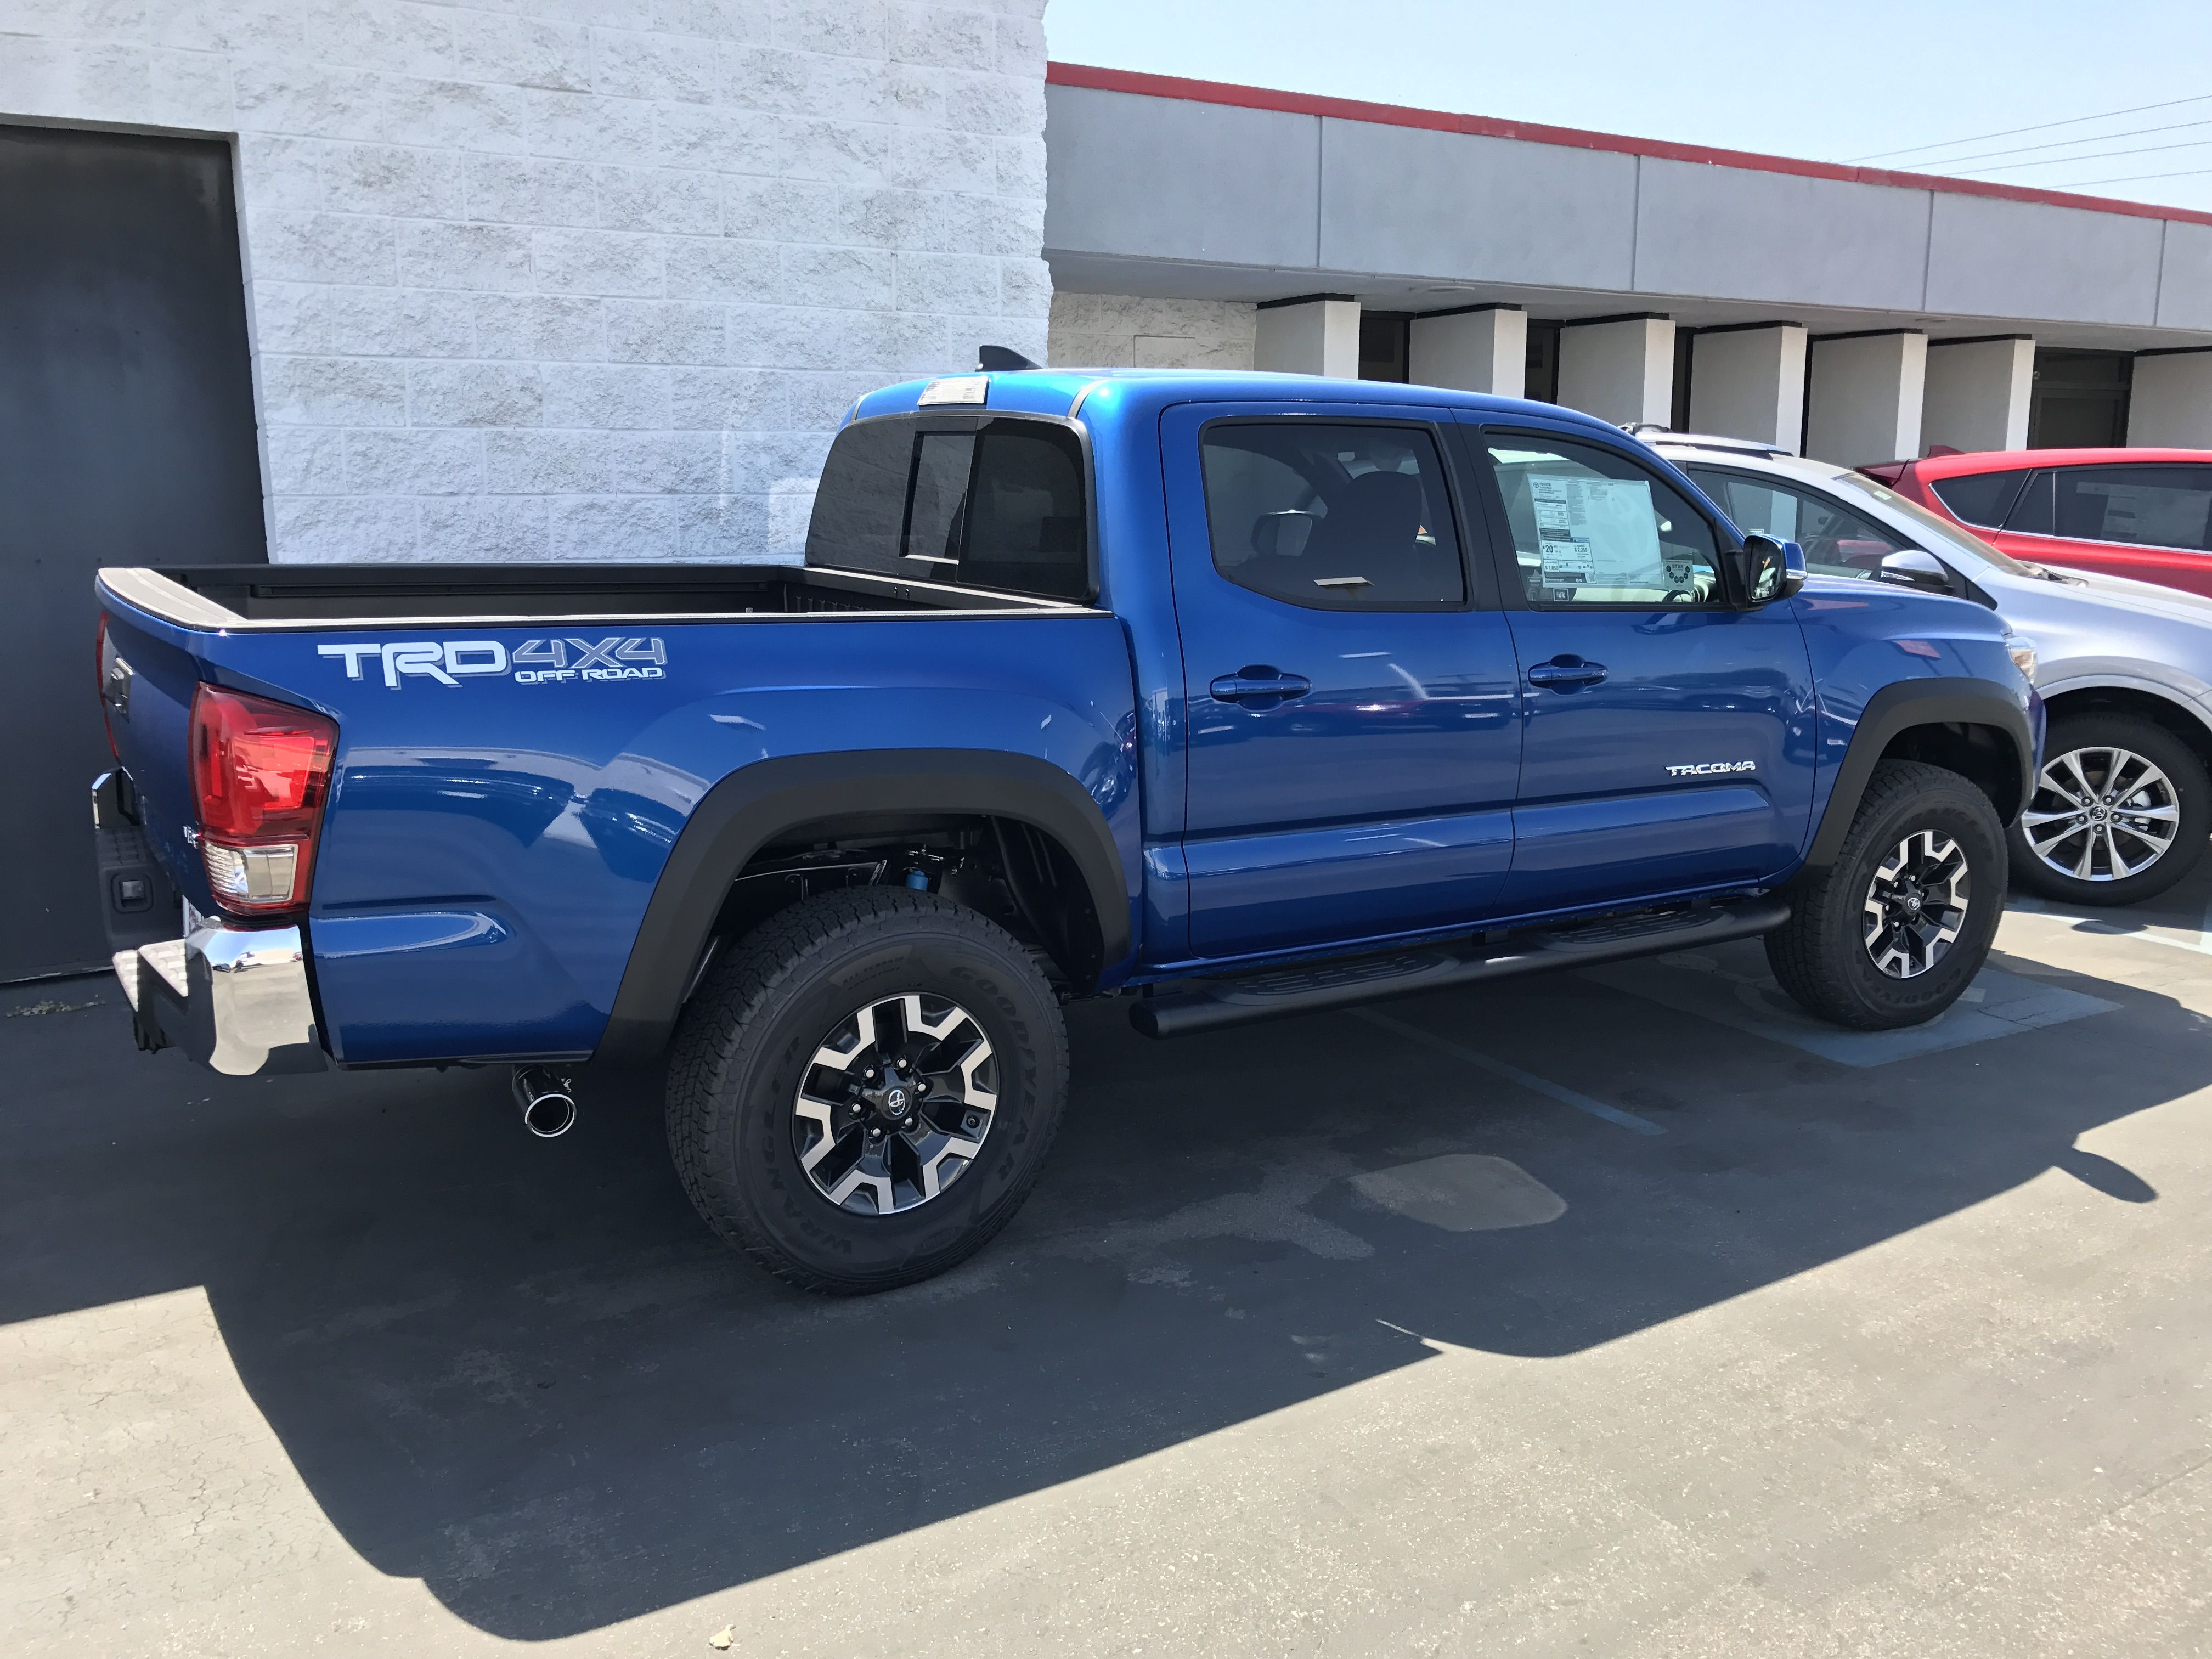 2017 toyota tacoma in blue trd double cab 4x4